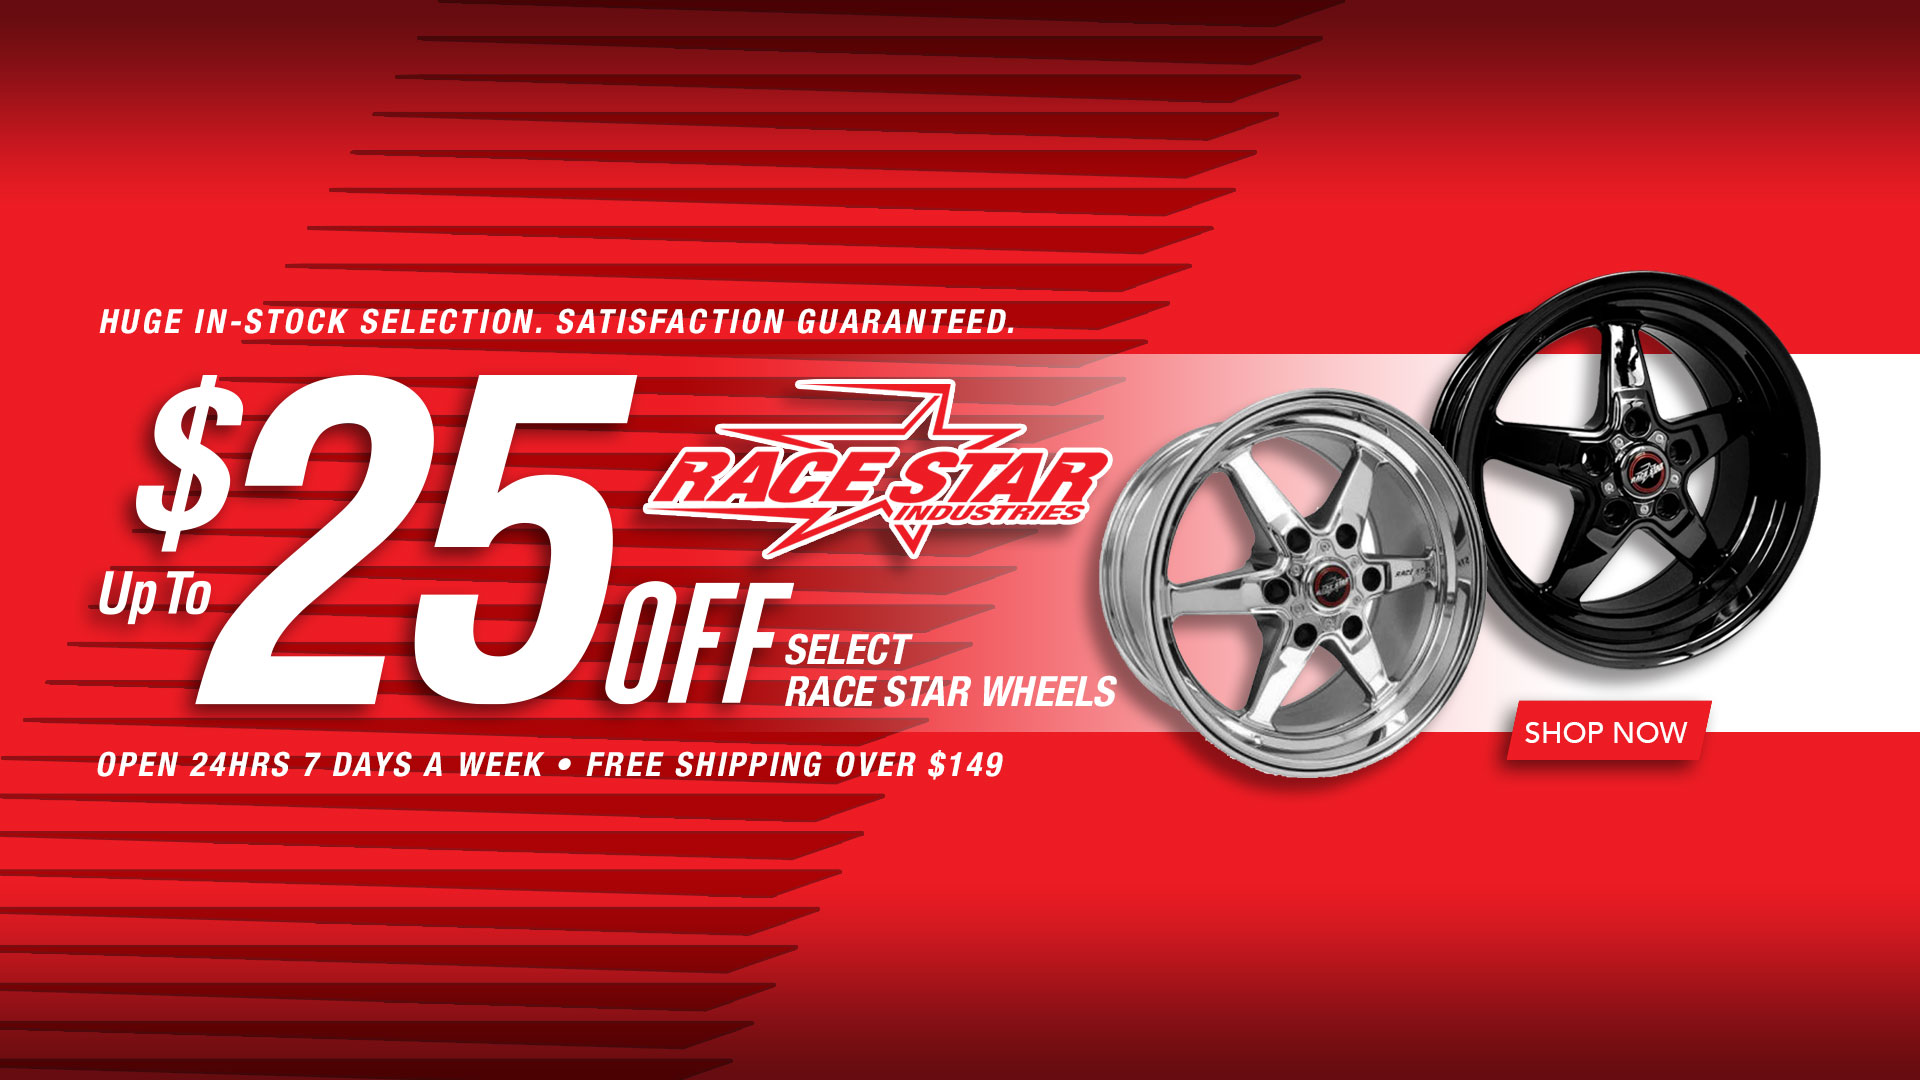 Save up to $25 on Select Race Star Wheels